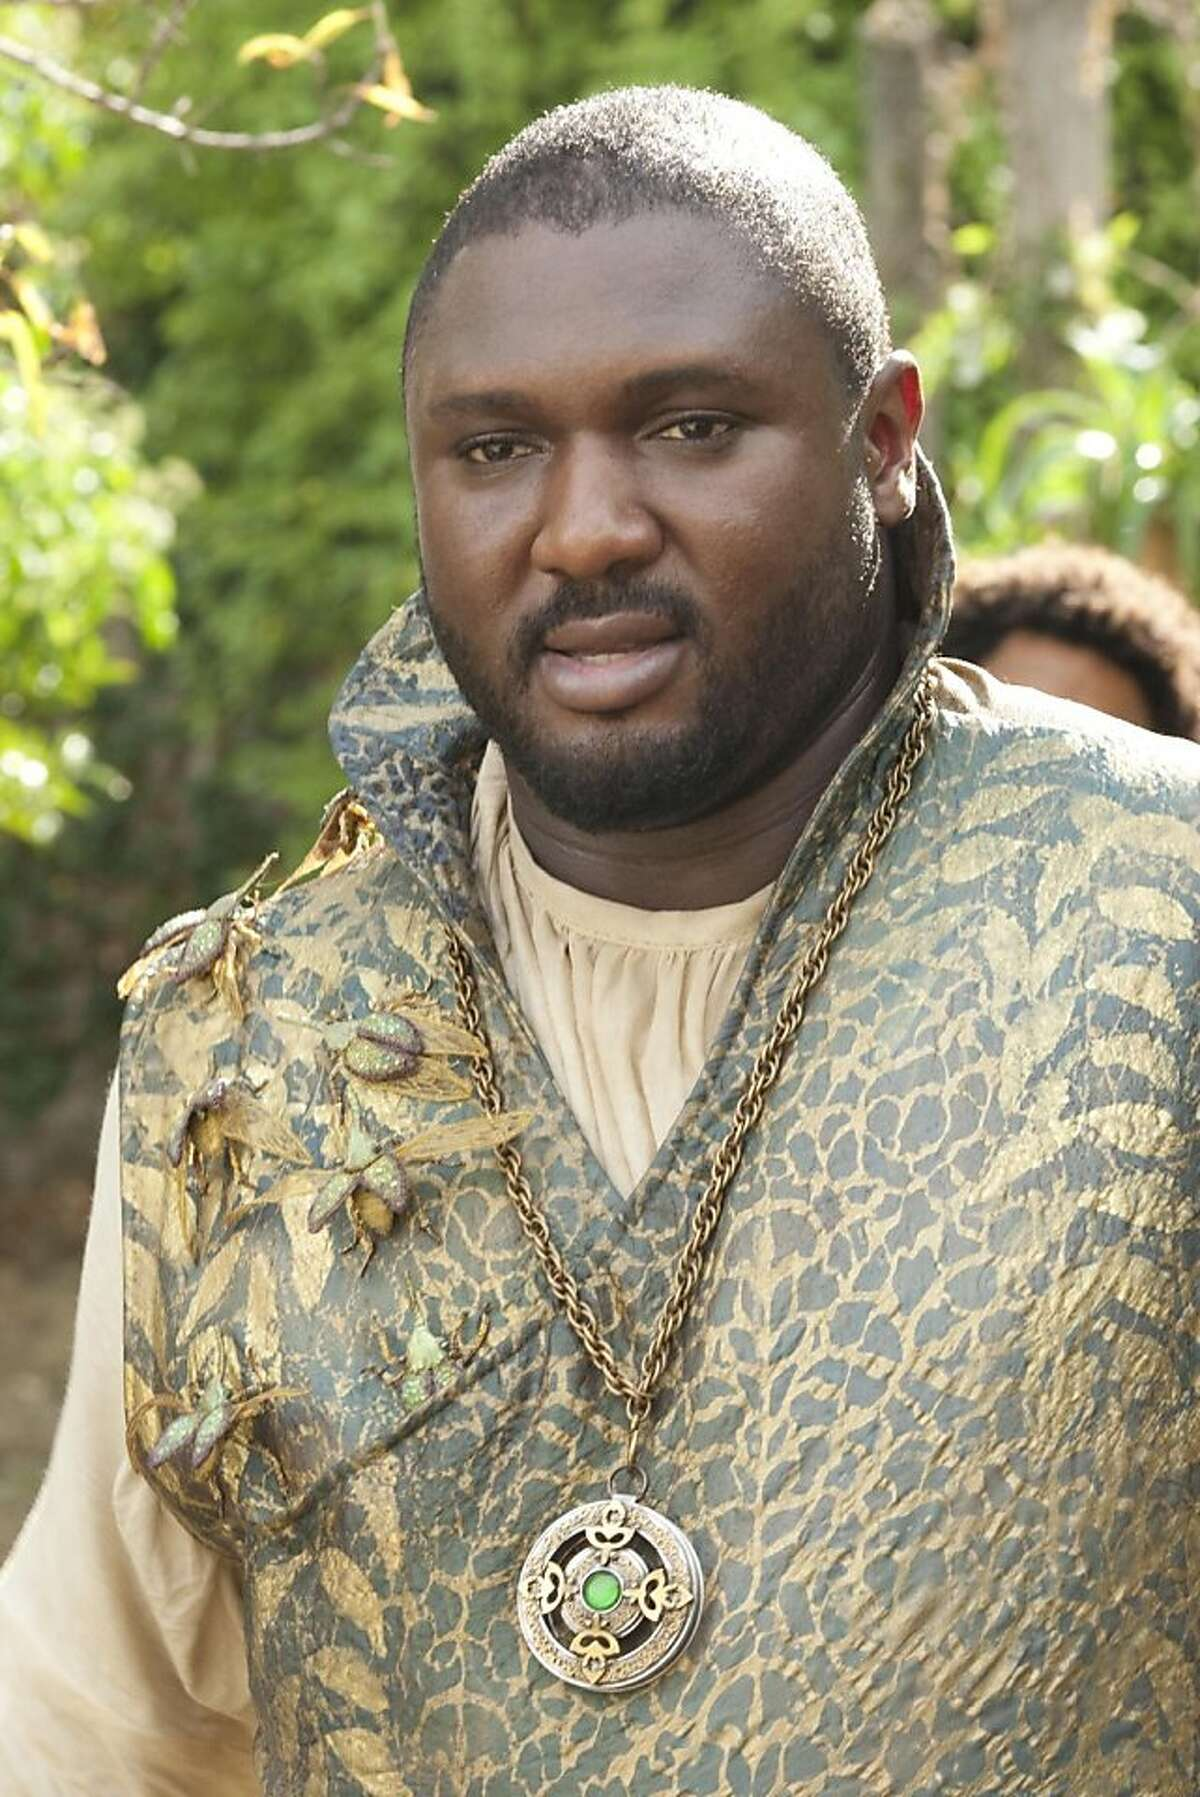 """In this undated image released by HBO, Nonso Anozie portrays Xaro Xhoan Daxos, a member of the Thirteen, a prominent group of traders within Qarth, in a scene from the second season of """"Game of Thrones."""" (AP Photo/HBO, Paul Schiraldi Photography)"""